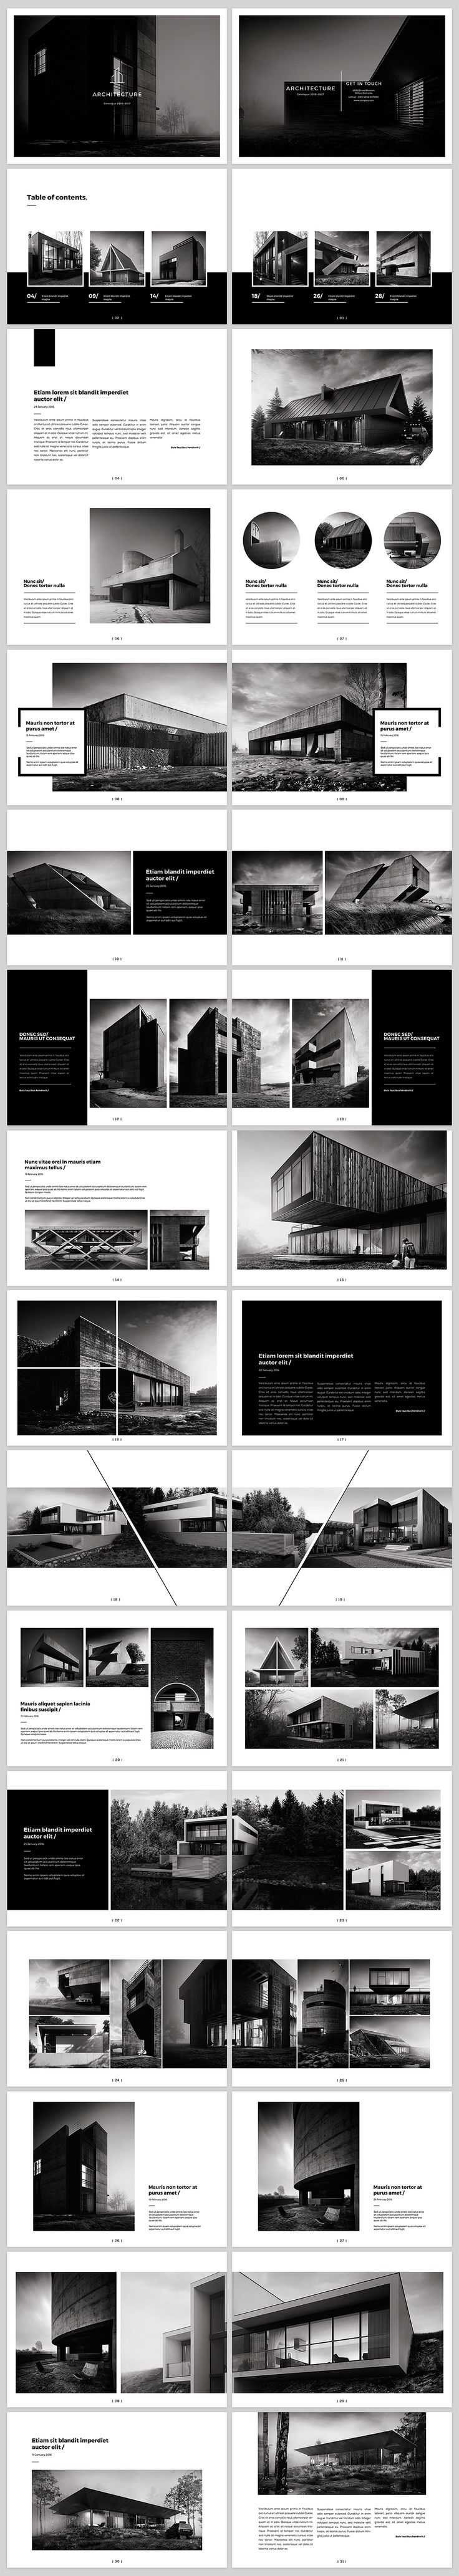 Architecture Landscape BrochureDetails:- 32 pages- Print ready - 300 DPI- CMYK- 210mm x 148mm- Easy to edit- Layered PSD filesFonts:- fontfabric.com/nexa-free-font- google.com/fonts/specimen/MontserratPhotos:- Adam Spychala - behance.ne…